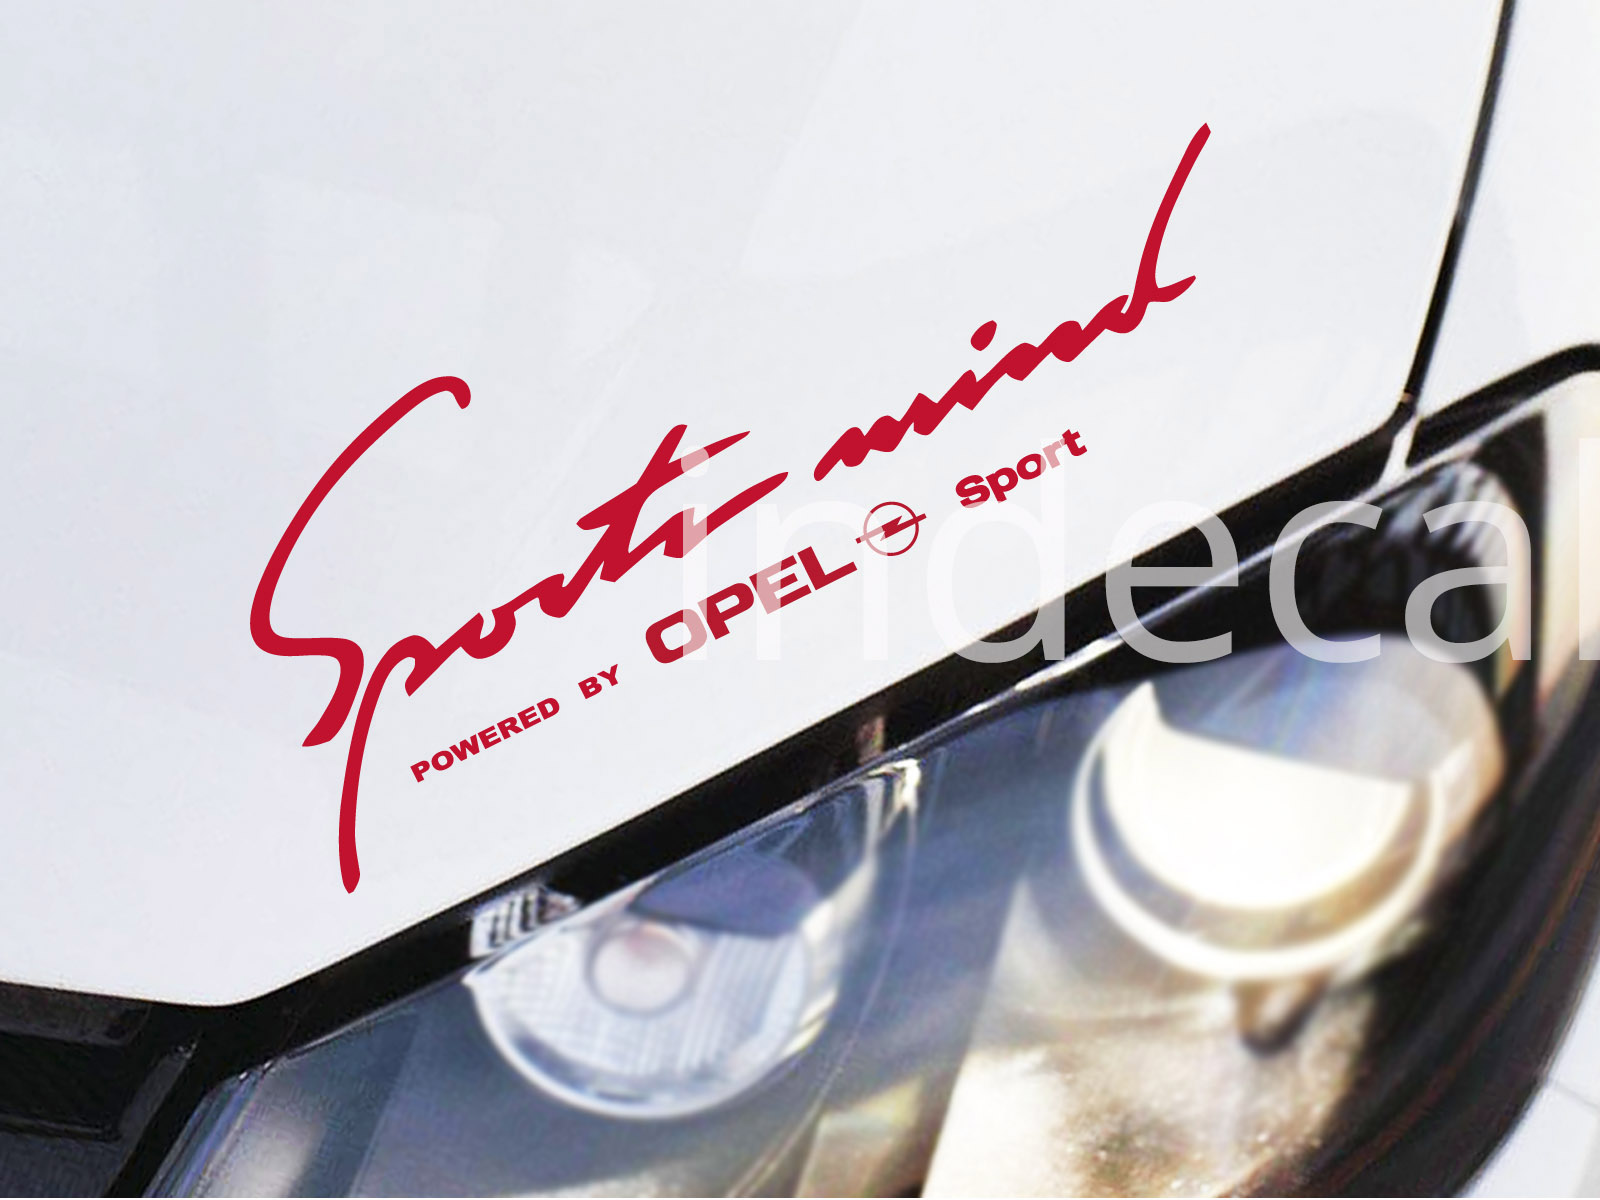 1 x Opel Sports Mind Sticker - Red